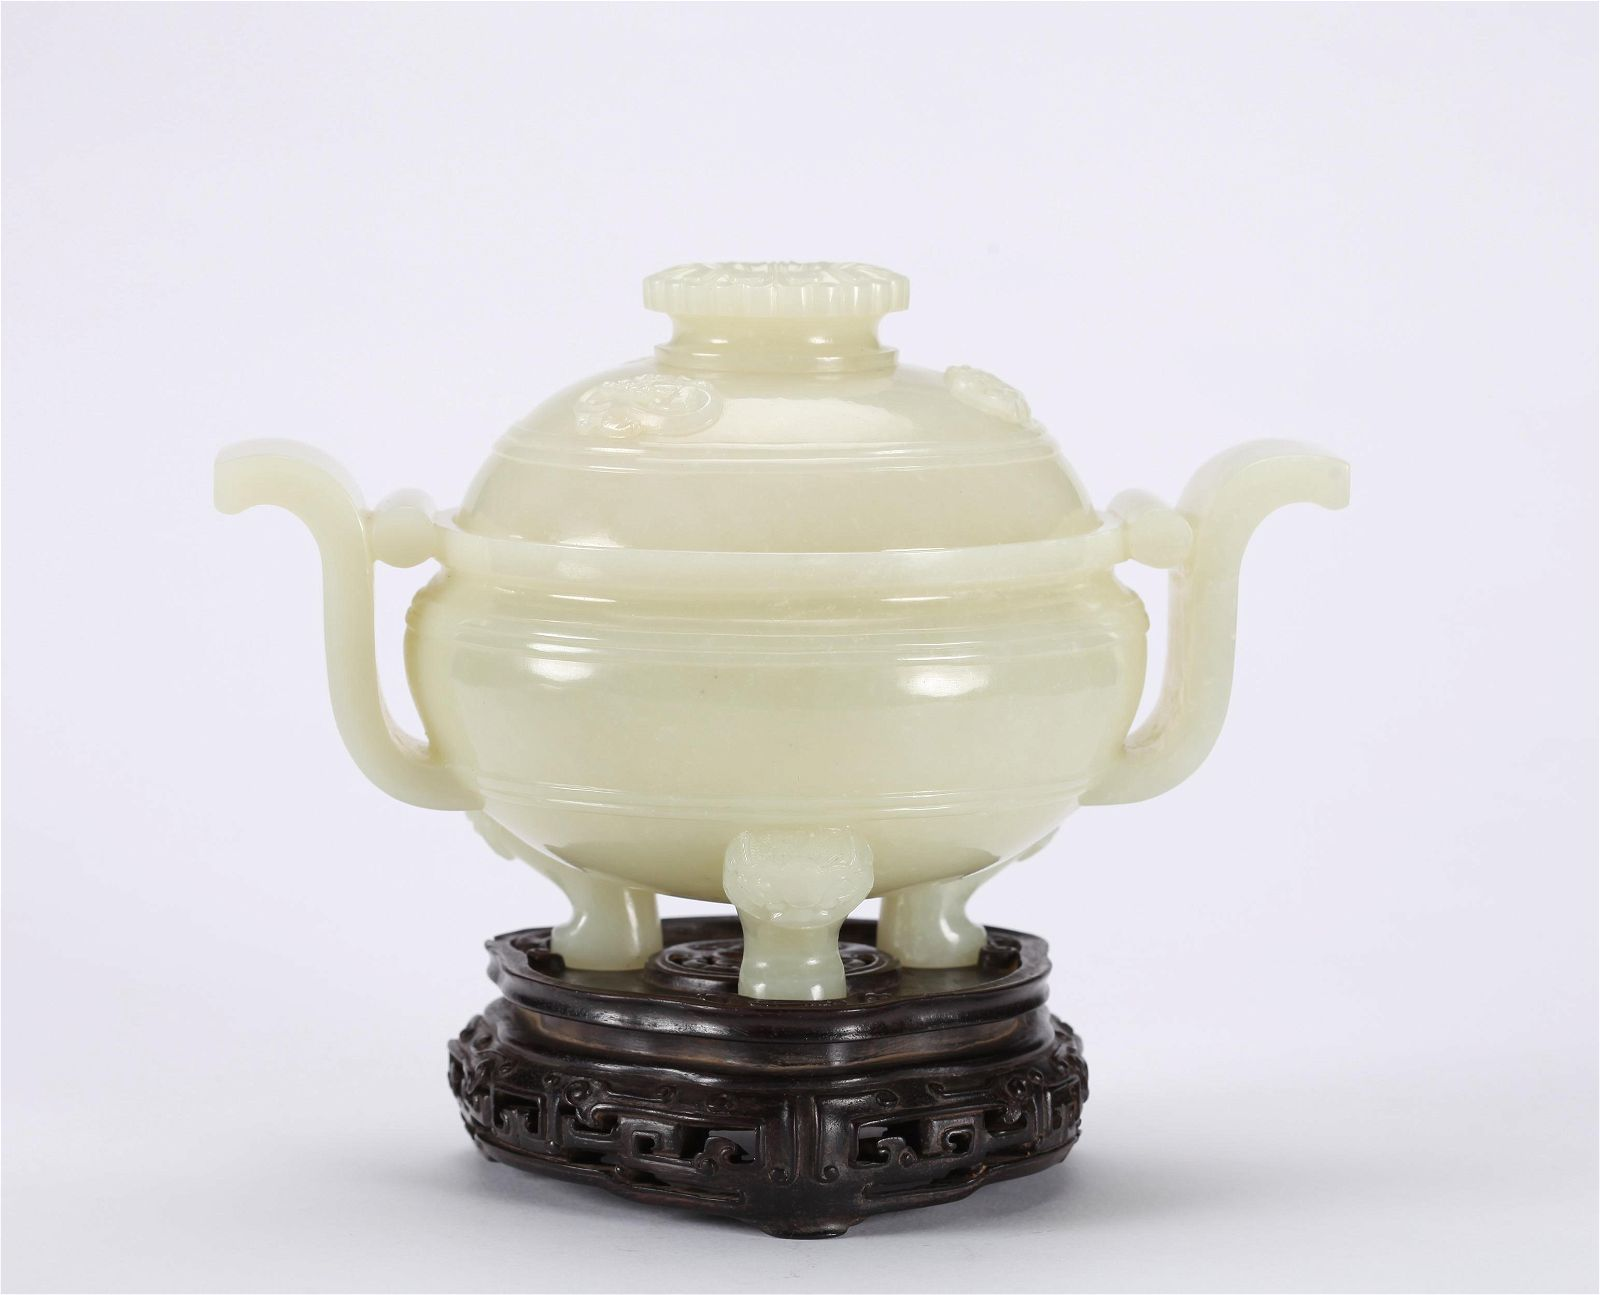 A CHINESE CARVED WHITE JADE CENSER, QING DYNASTY